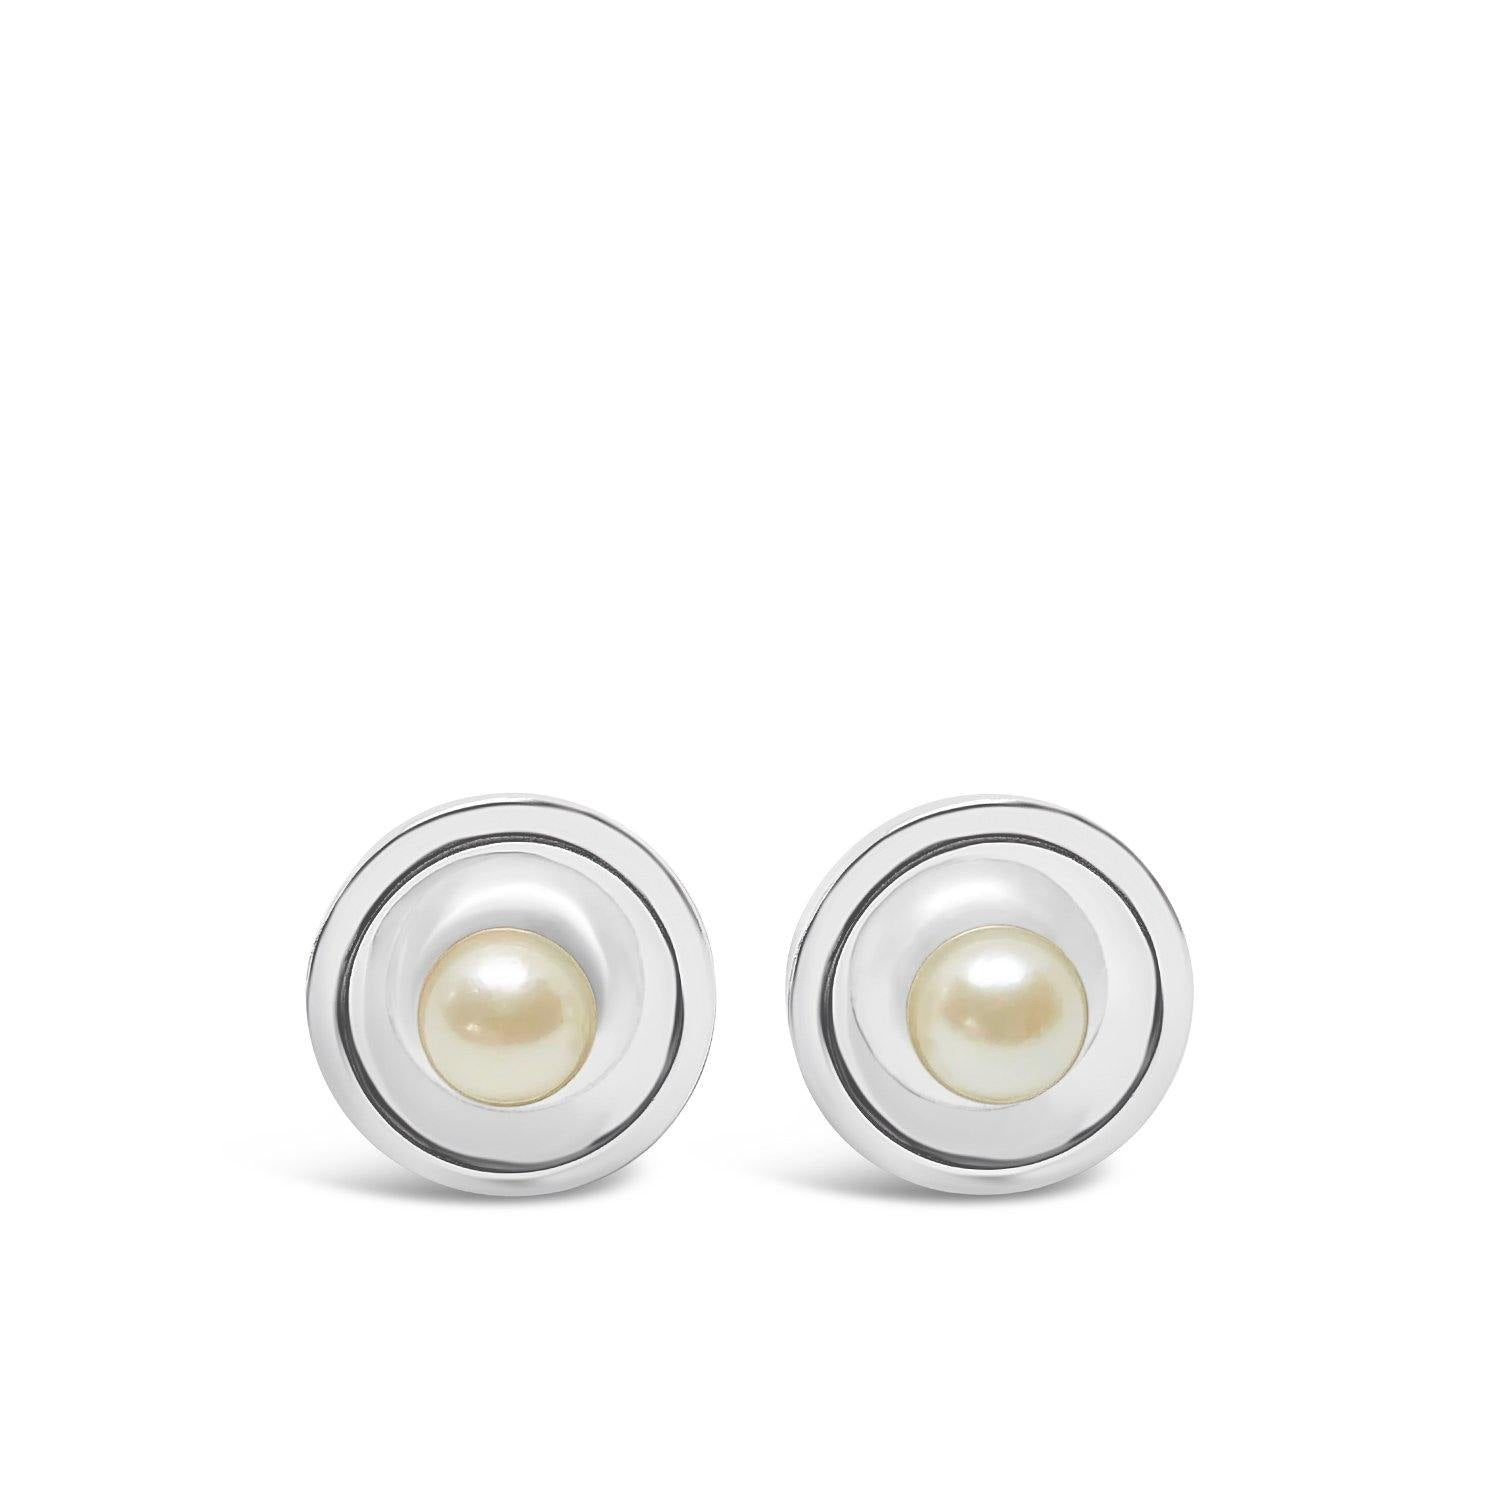 Modernist Japanese Cultured Akoya Pearl Round Cufflinks- Sterling Silver